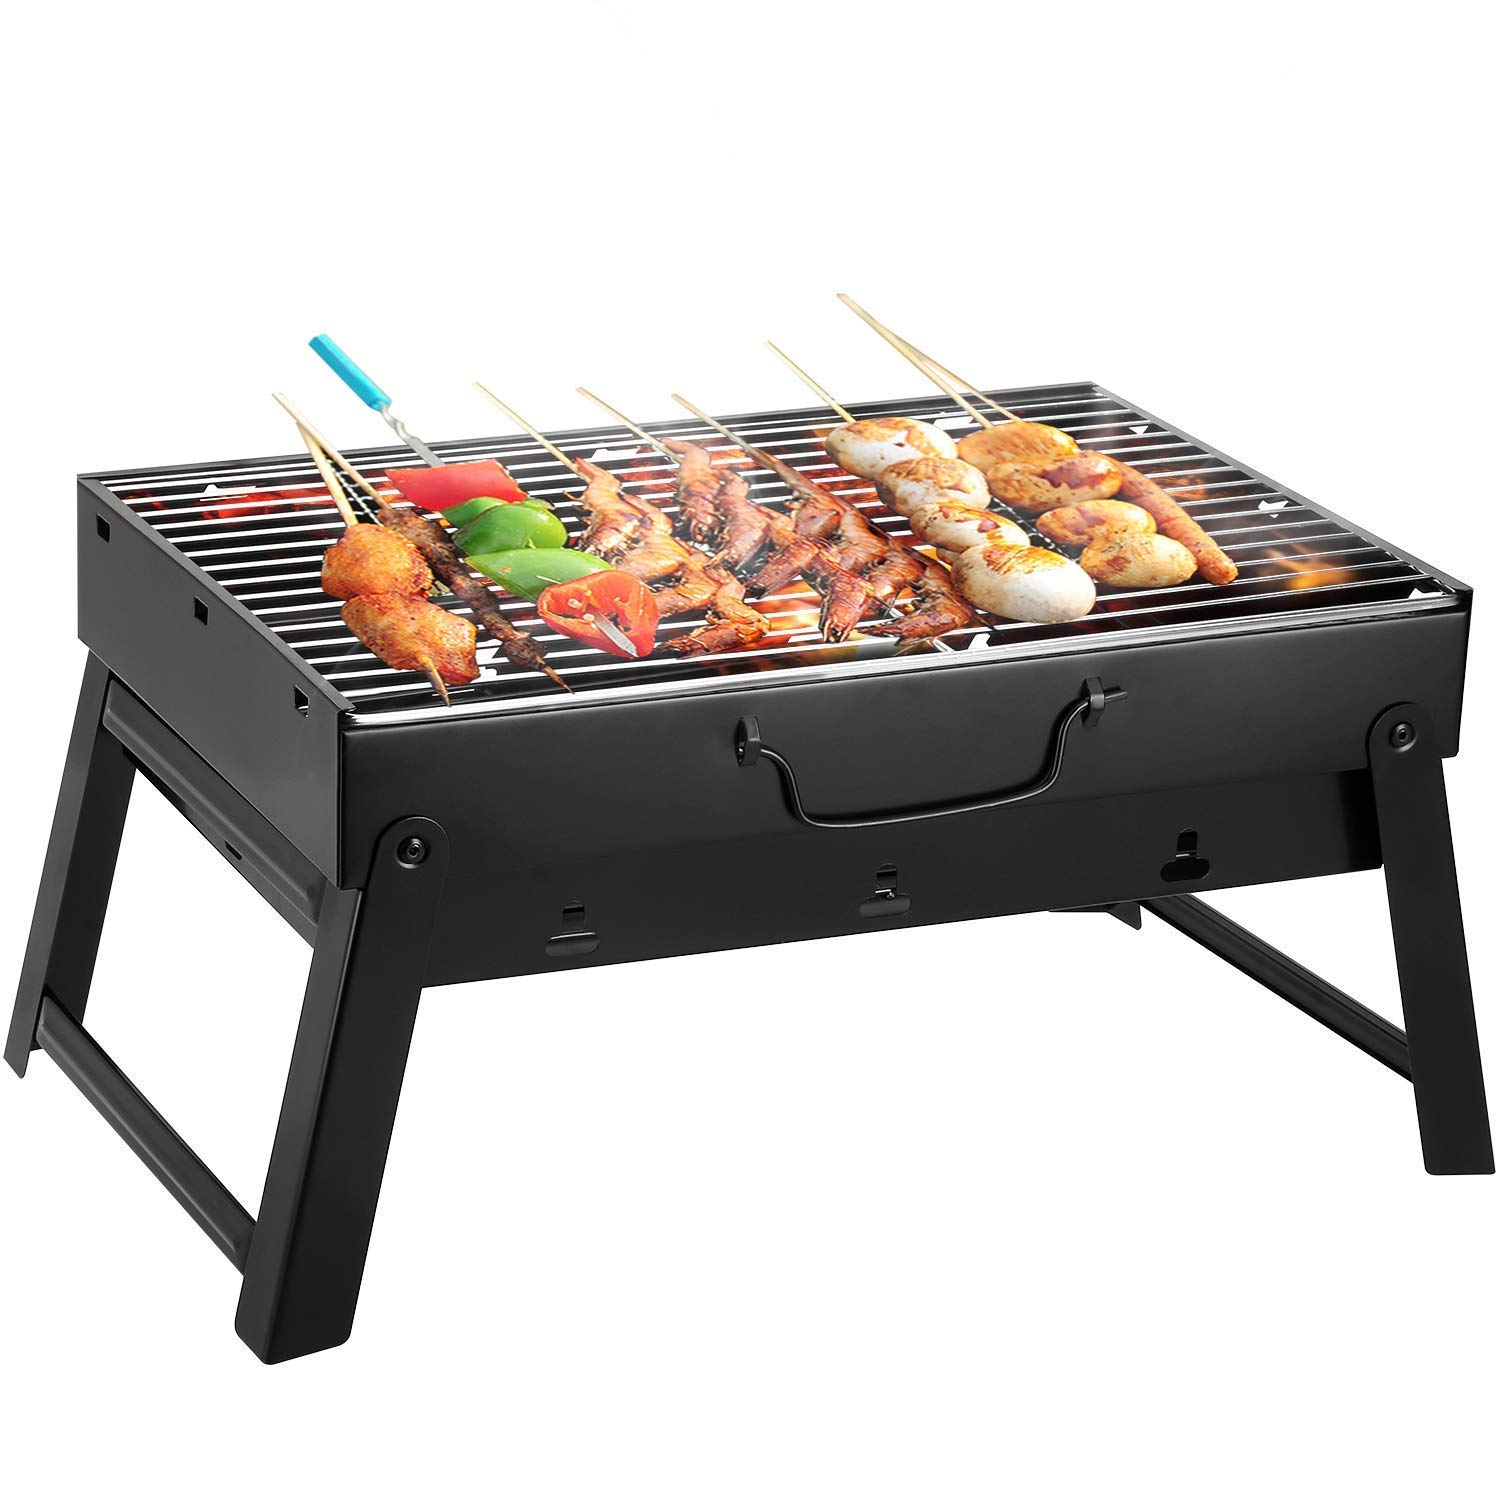 EVOLAND BBQ Charcoal Grill, Folding Portable Lightweight Small Barbecue Grill Tools for Outdoor Grilling Cooking Camping Hiking Picnics Tailgating Backpacking Party by EVOLAND